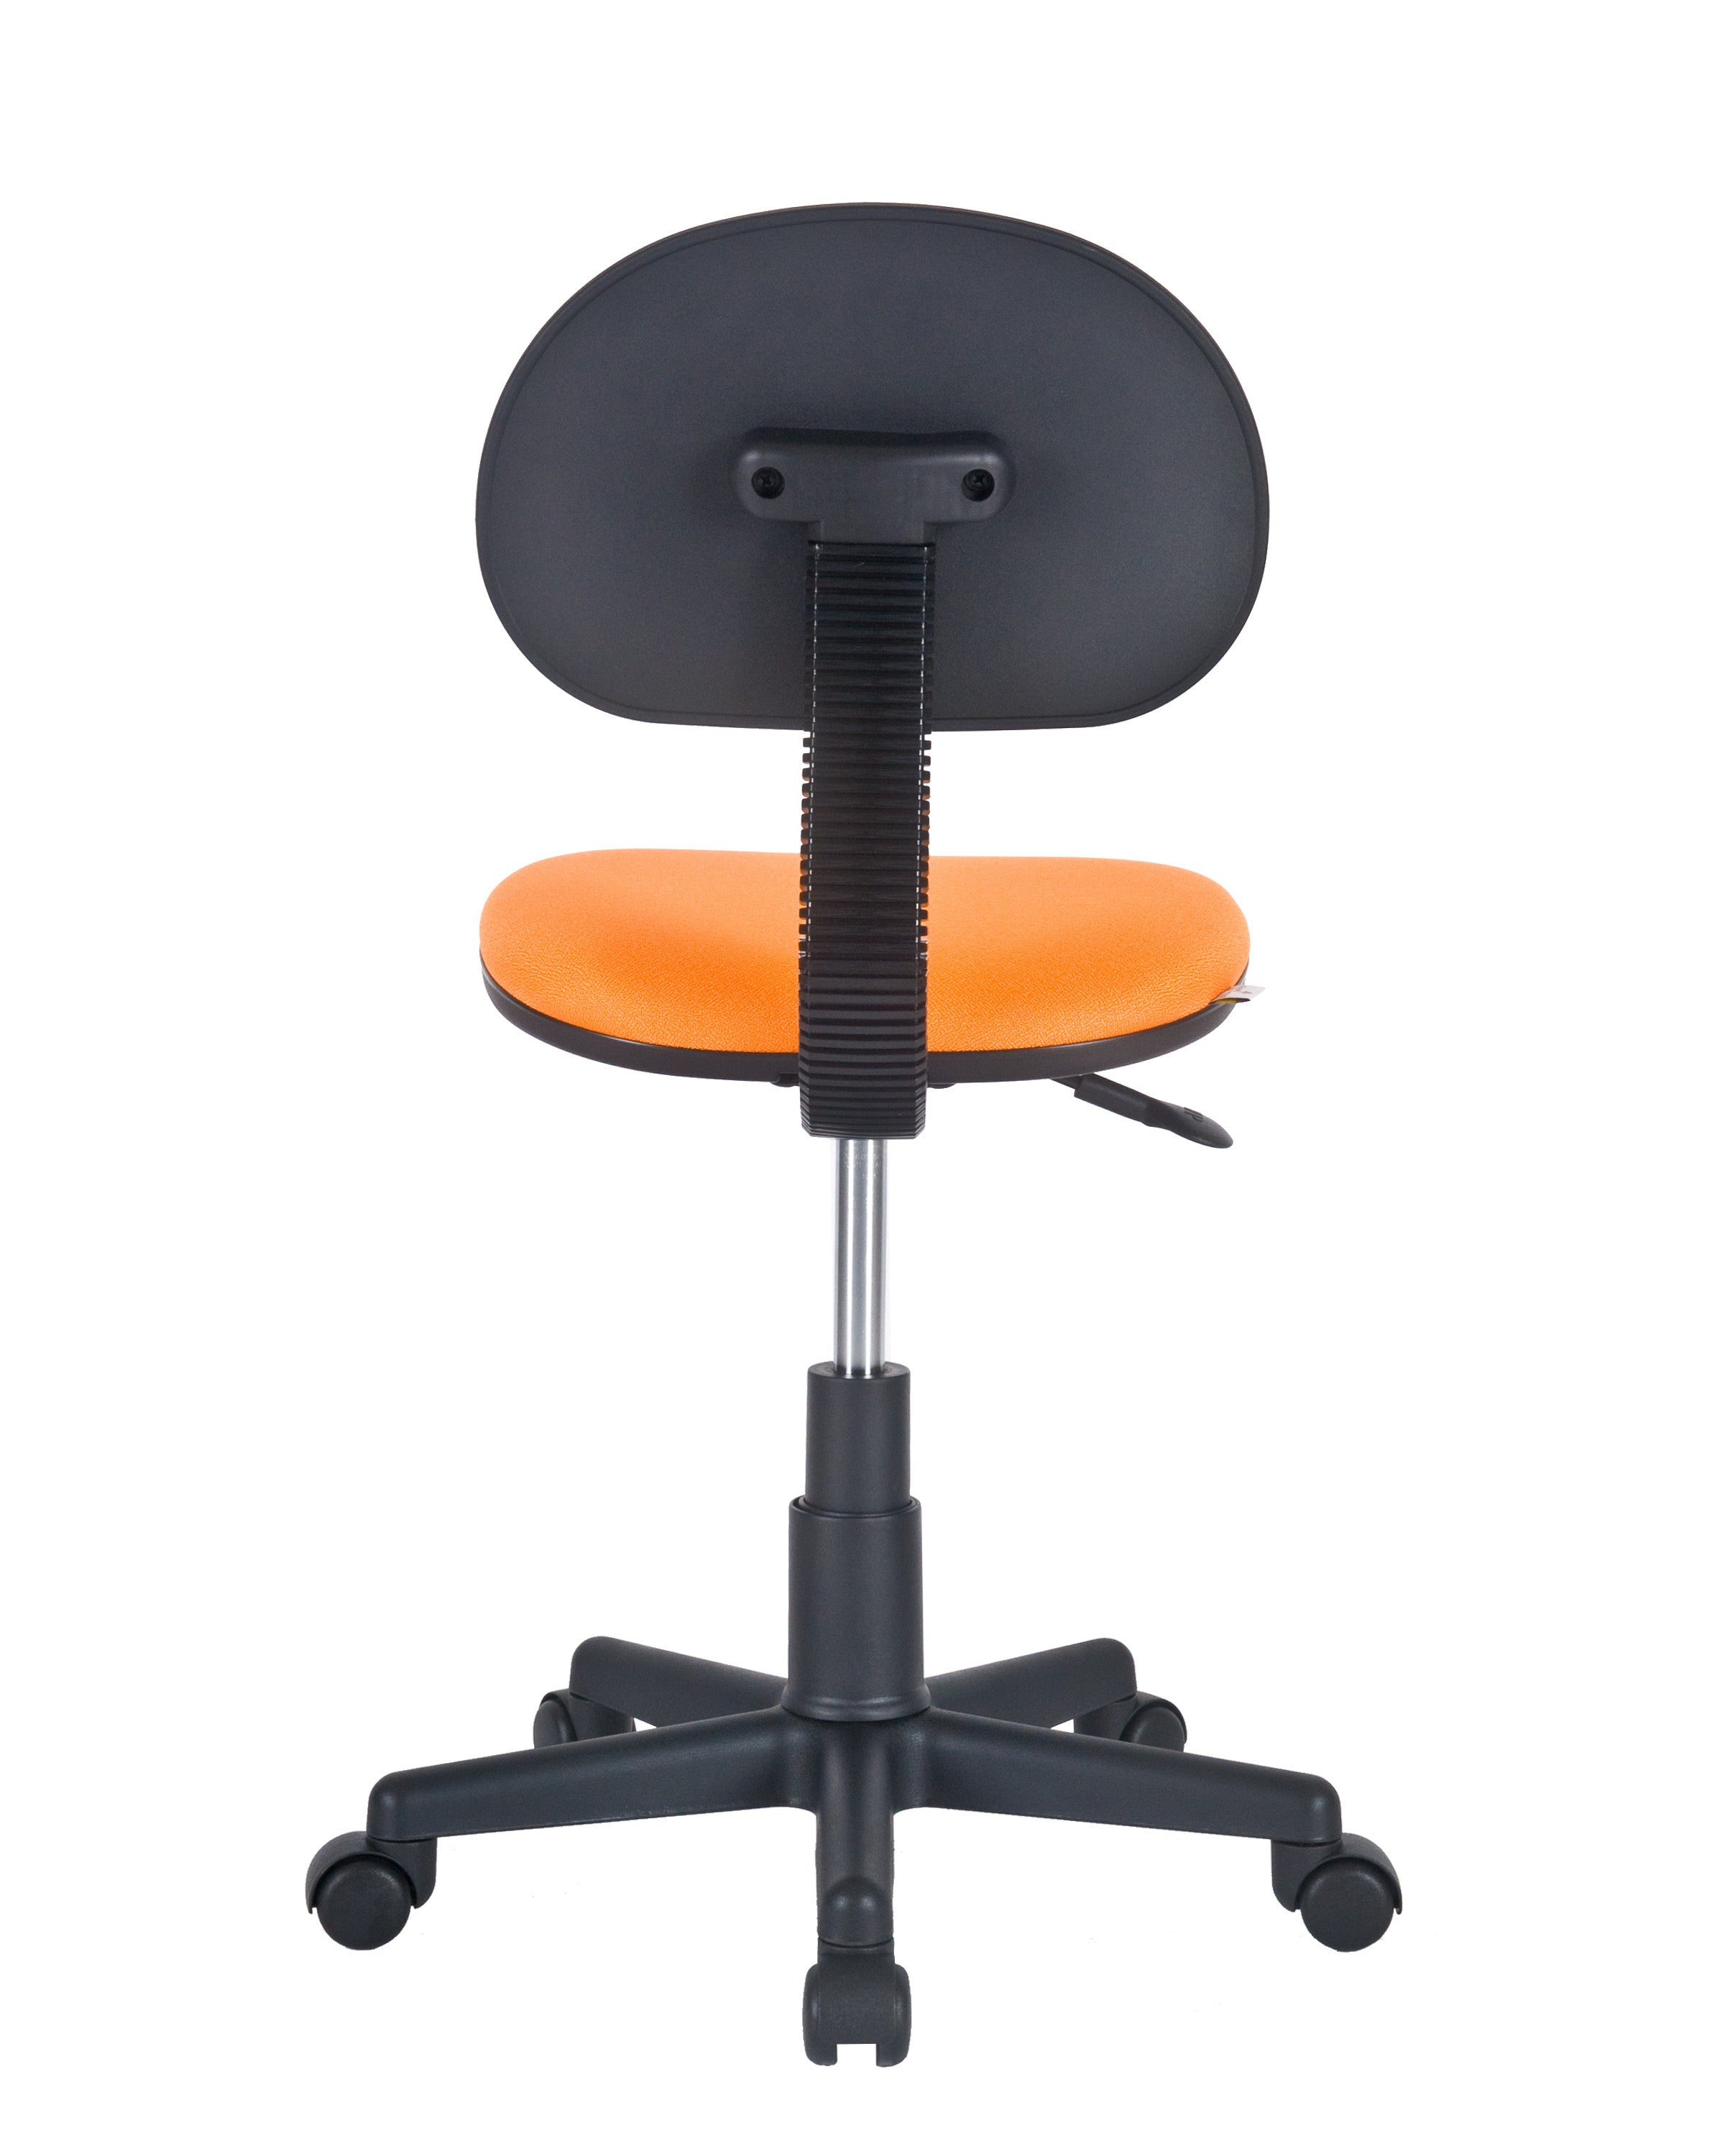 Armless Task Chair by Charm Furniture (Orange)